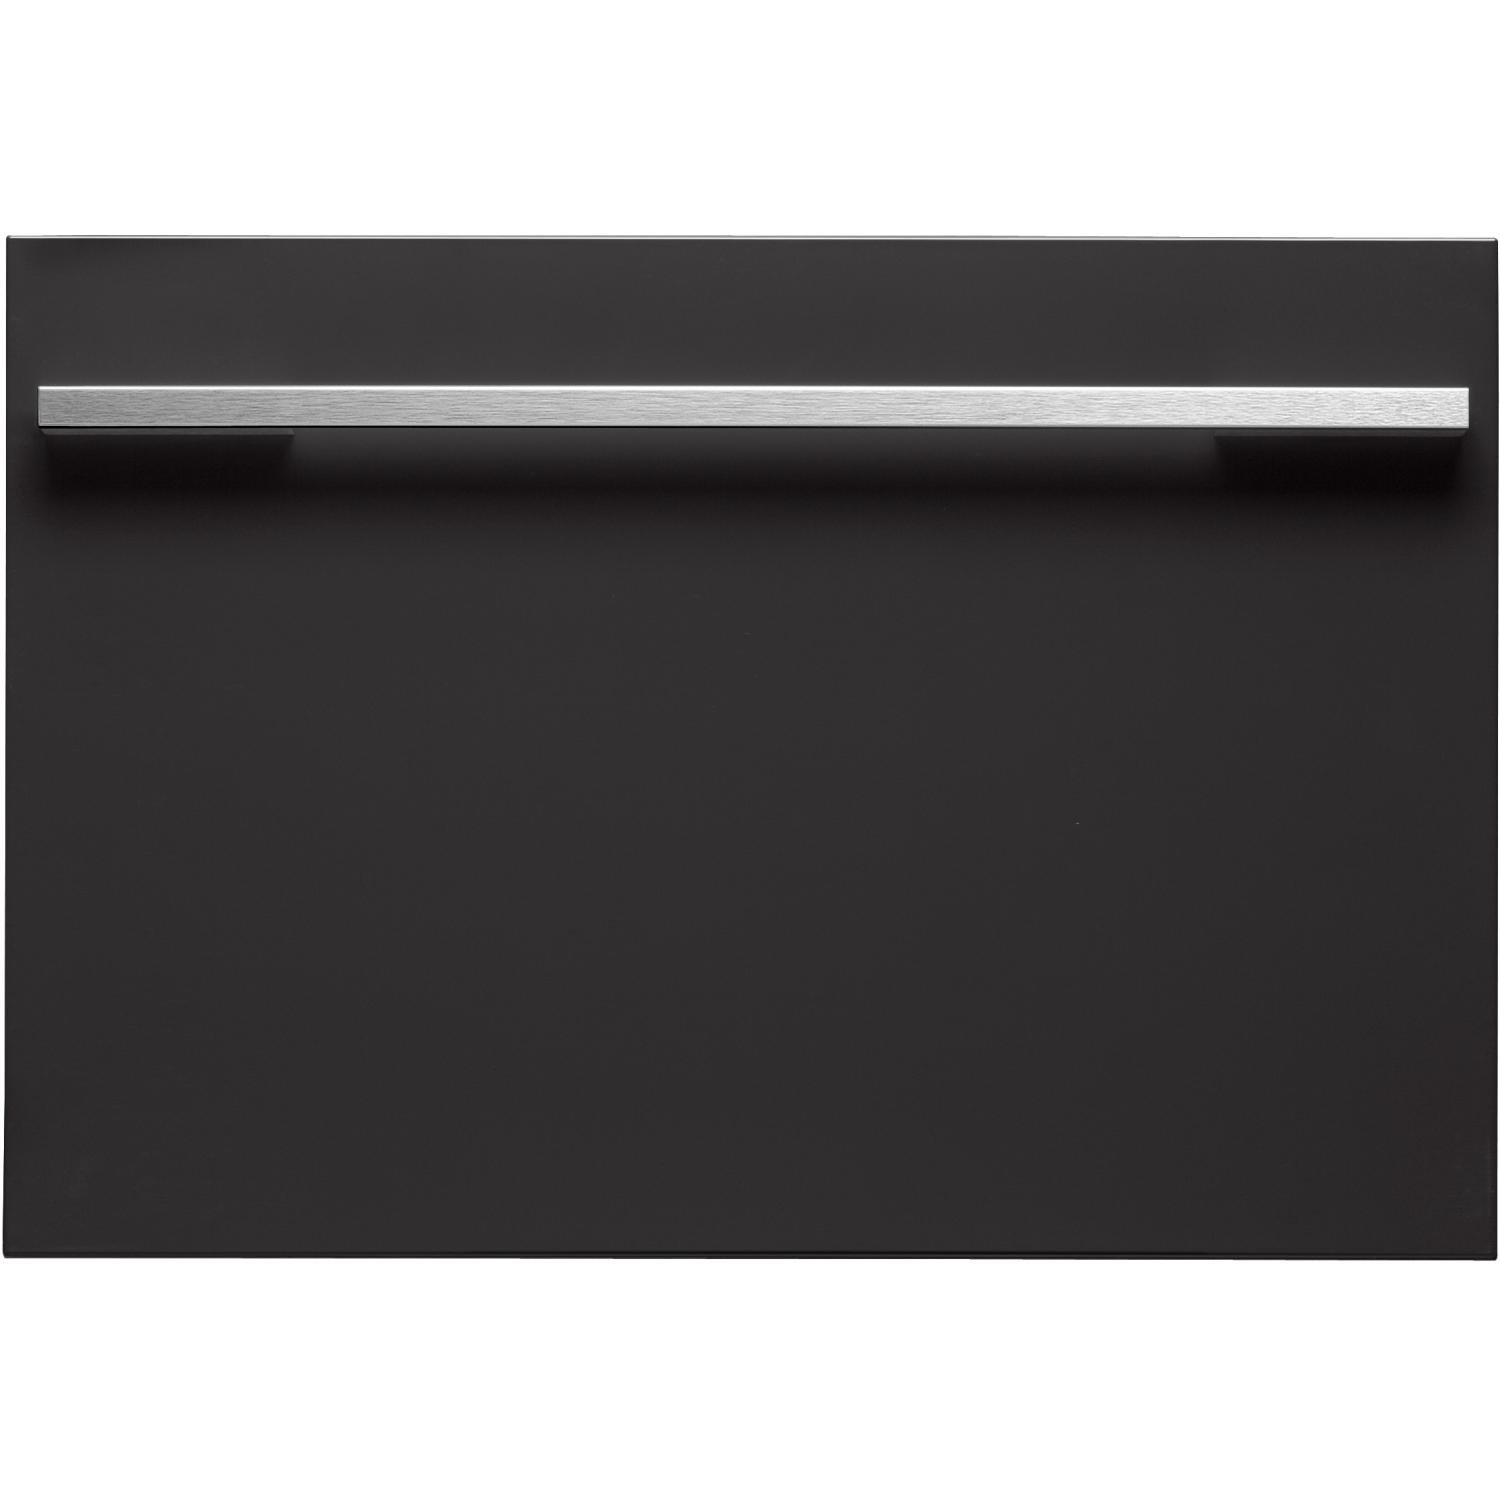 """DishDrawer Series DD24SI7 24"""" Fully Integrated Panel Ready Single Drawer Dishwasher with 7 Place Settings 9 Wash Cycles Adjustable Racks Delay Start Eco Option and Energy Star"""